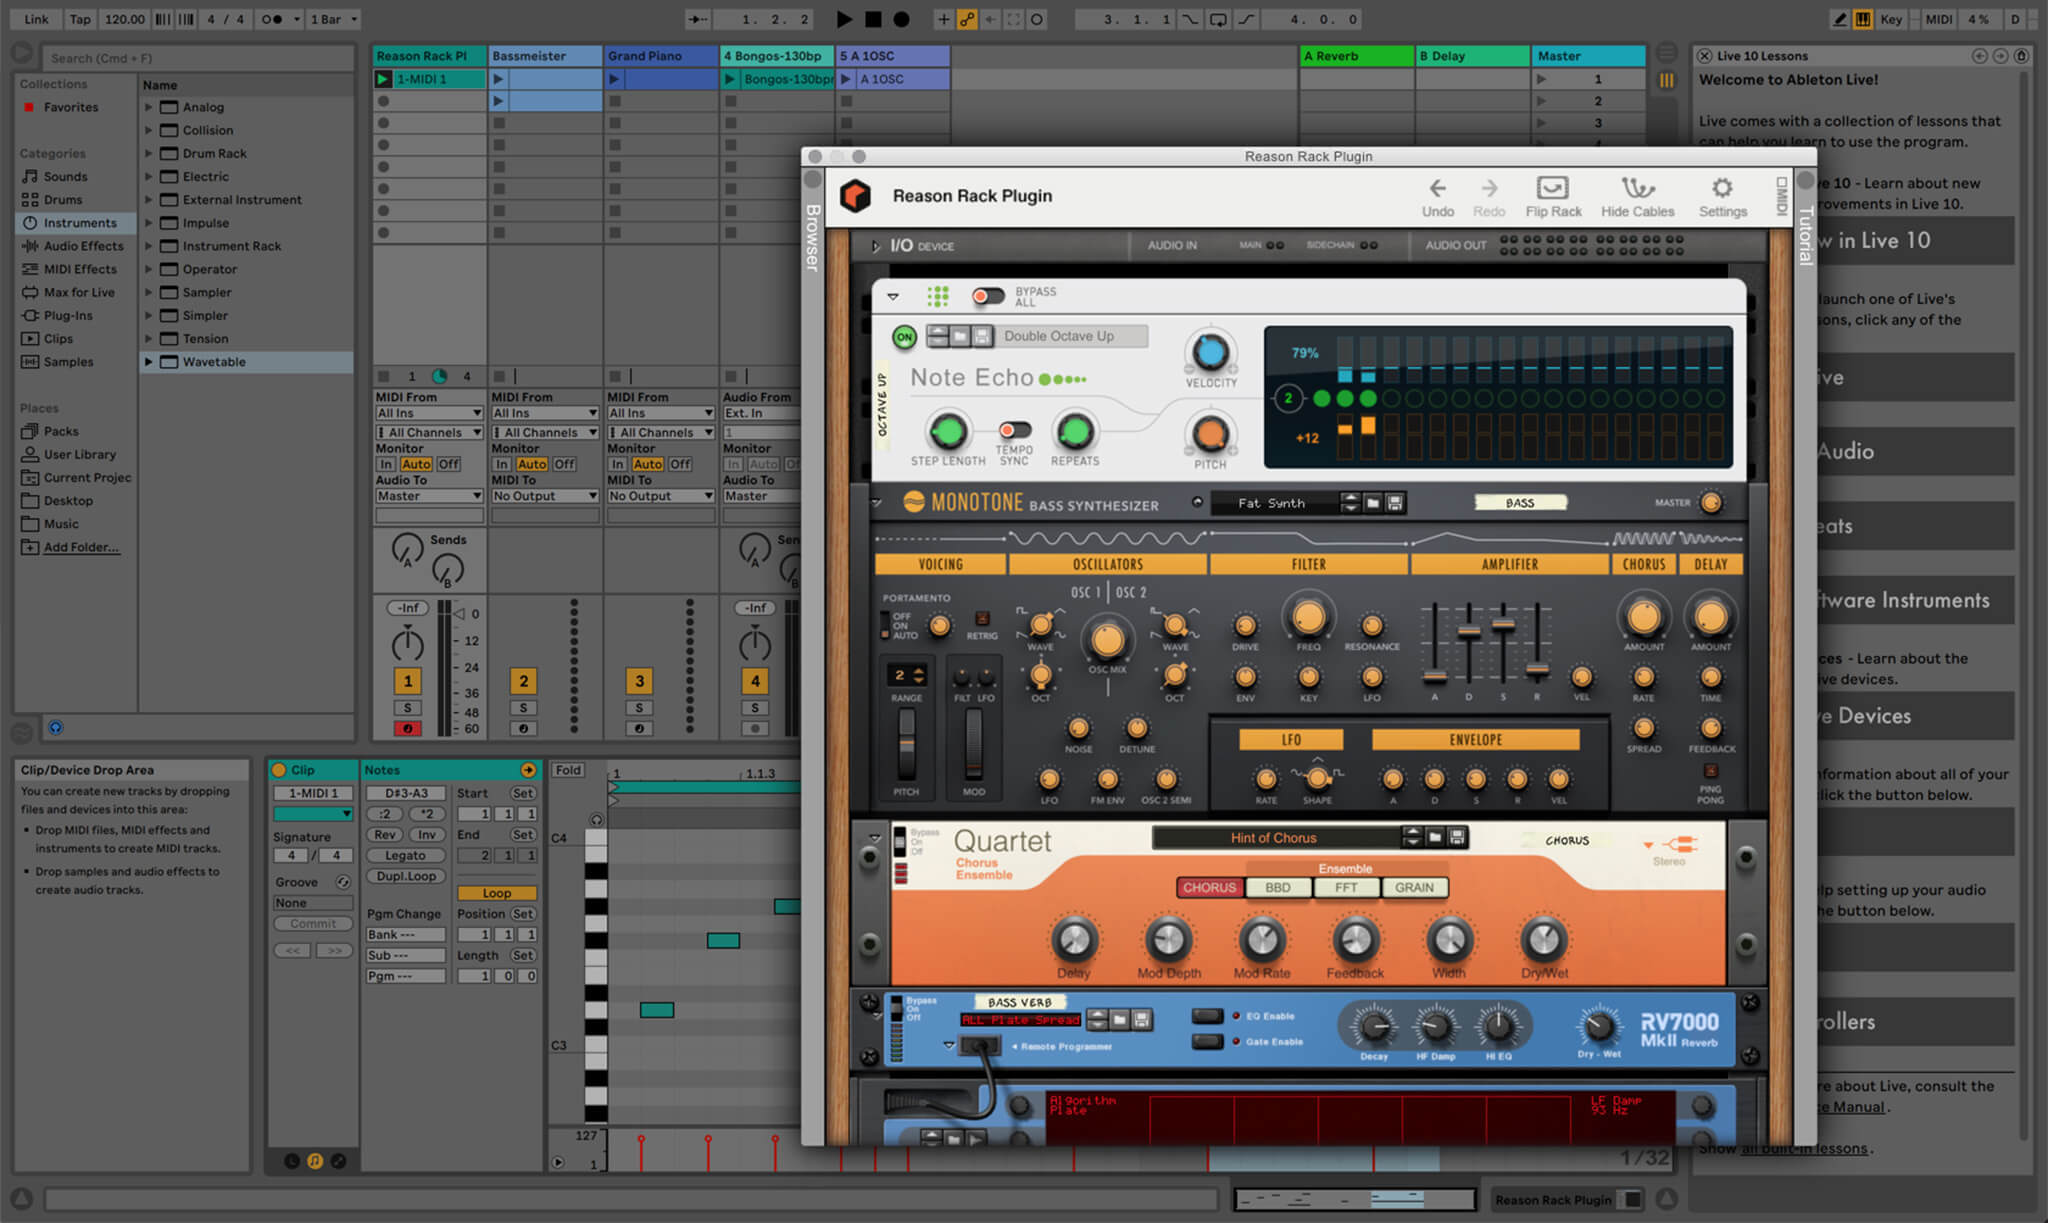 Reason Rack Plugin for Ableton Live